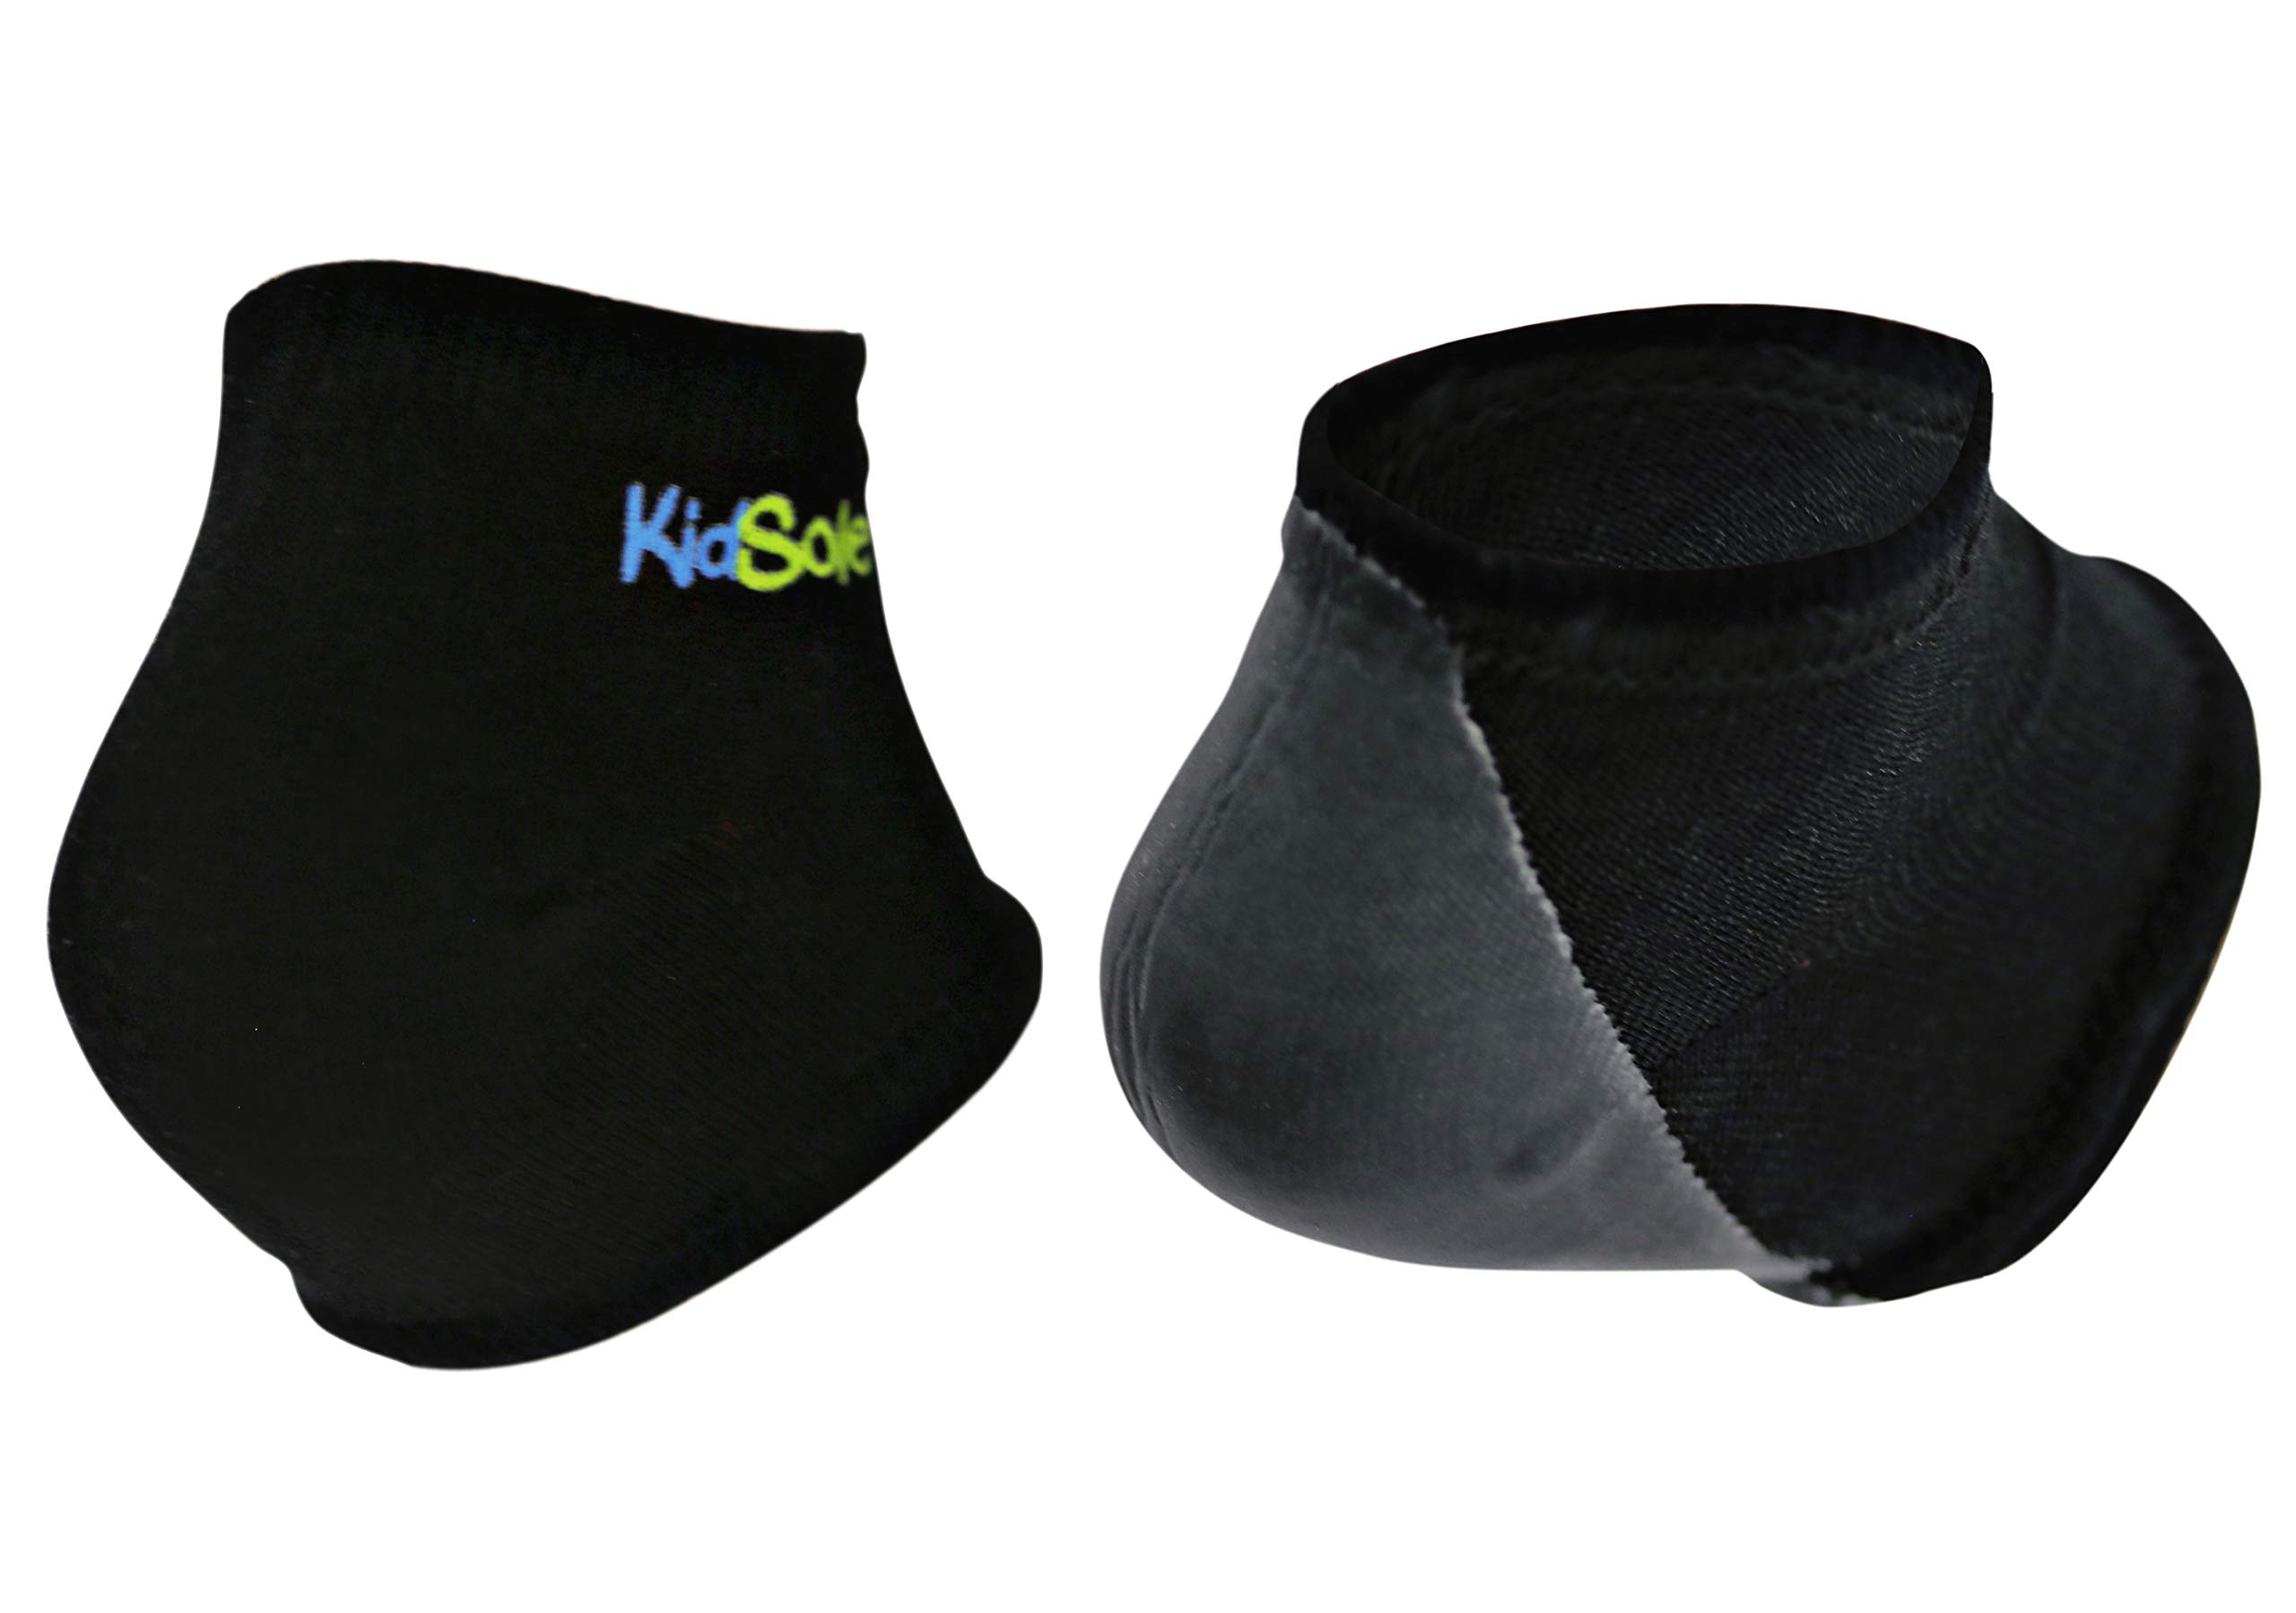 KidSole Gel Heel Strap for Kids with Heel Sensitivity from Severs Disease, Plantar Fasciitis. (Black) by KidSole